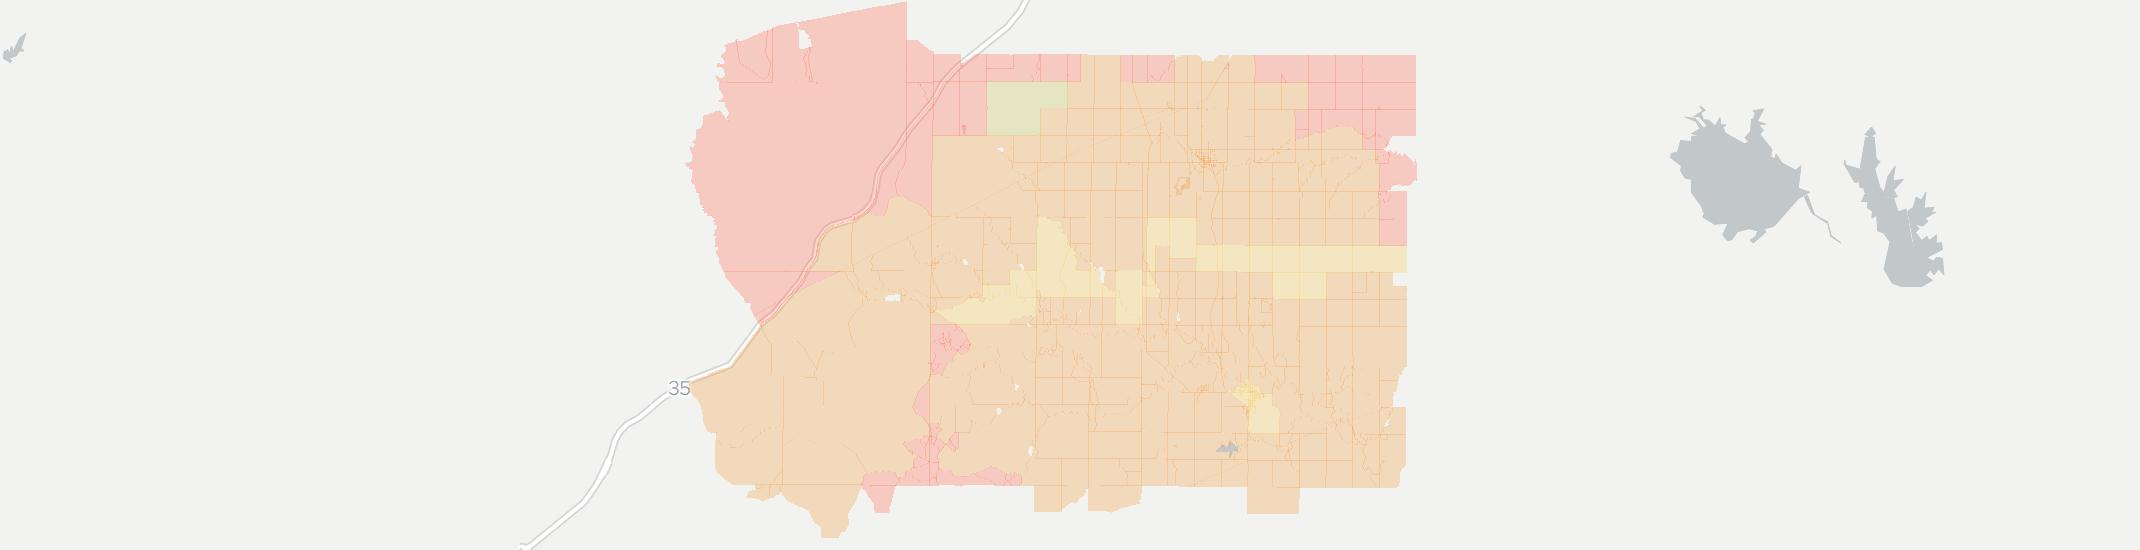 Olpe Internet Competition Map. Click for interactive map.